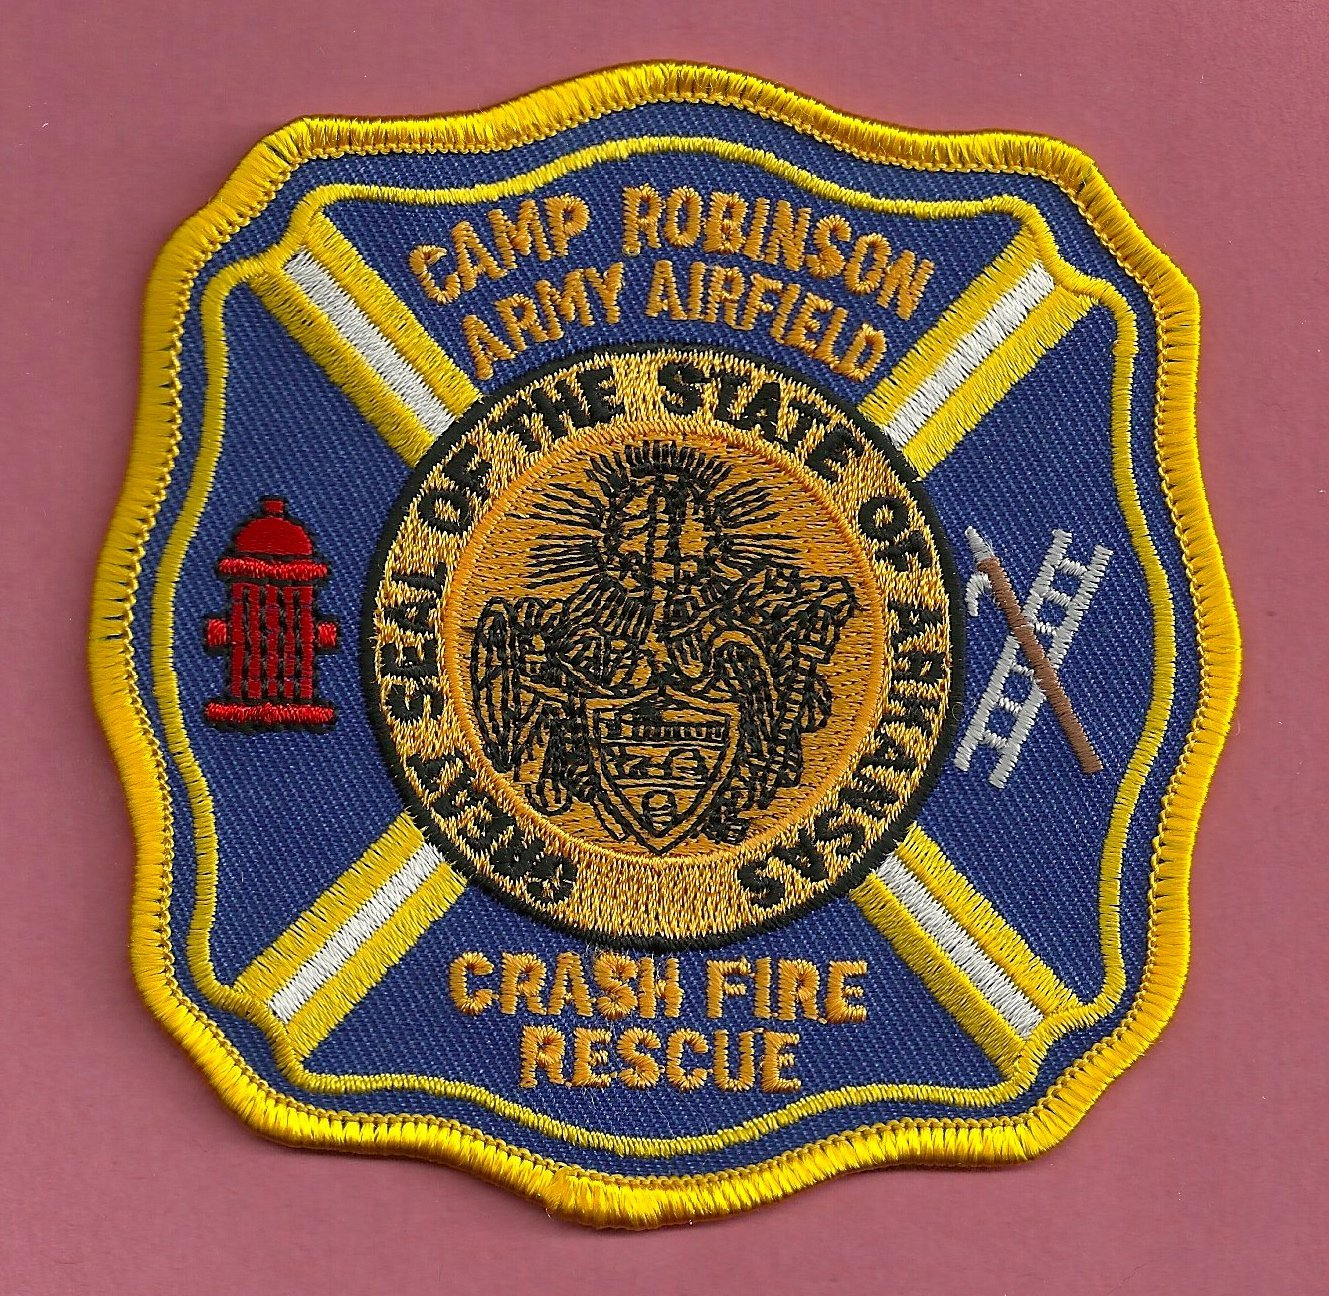 CAMP ROBINSON ARMY AIRFIELD ARKANSAS CRASH FIRE RESCUE PATCH